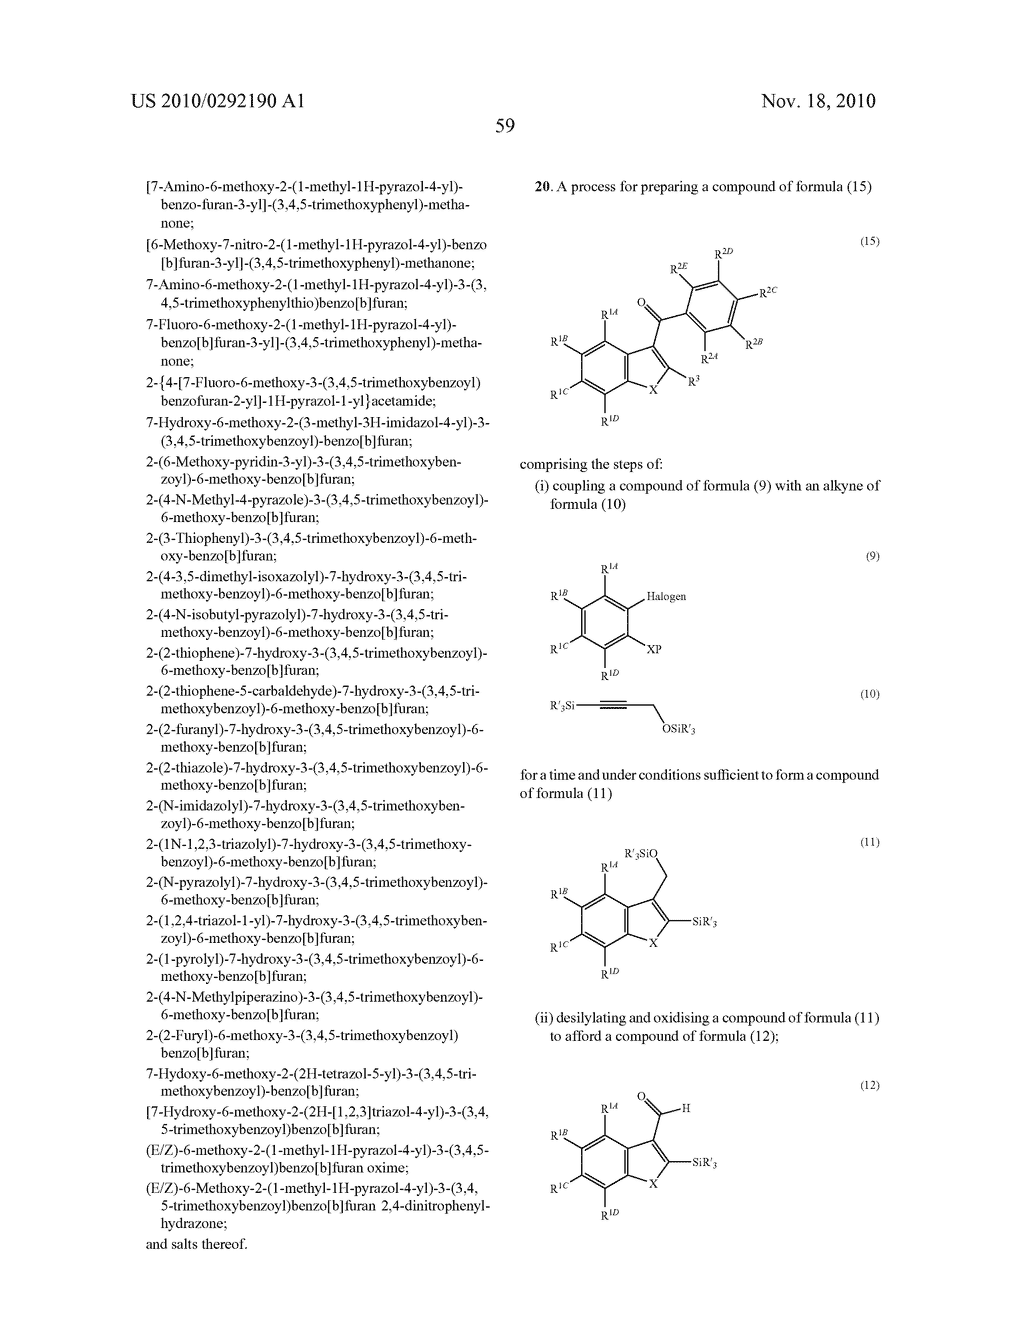 NOVEL TUBULIN POLYMERISATION INHIBITORS - diagram, schematic, and image 61